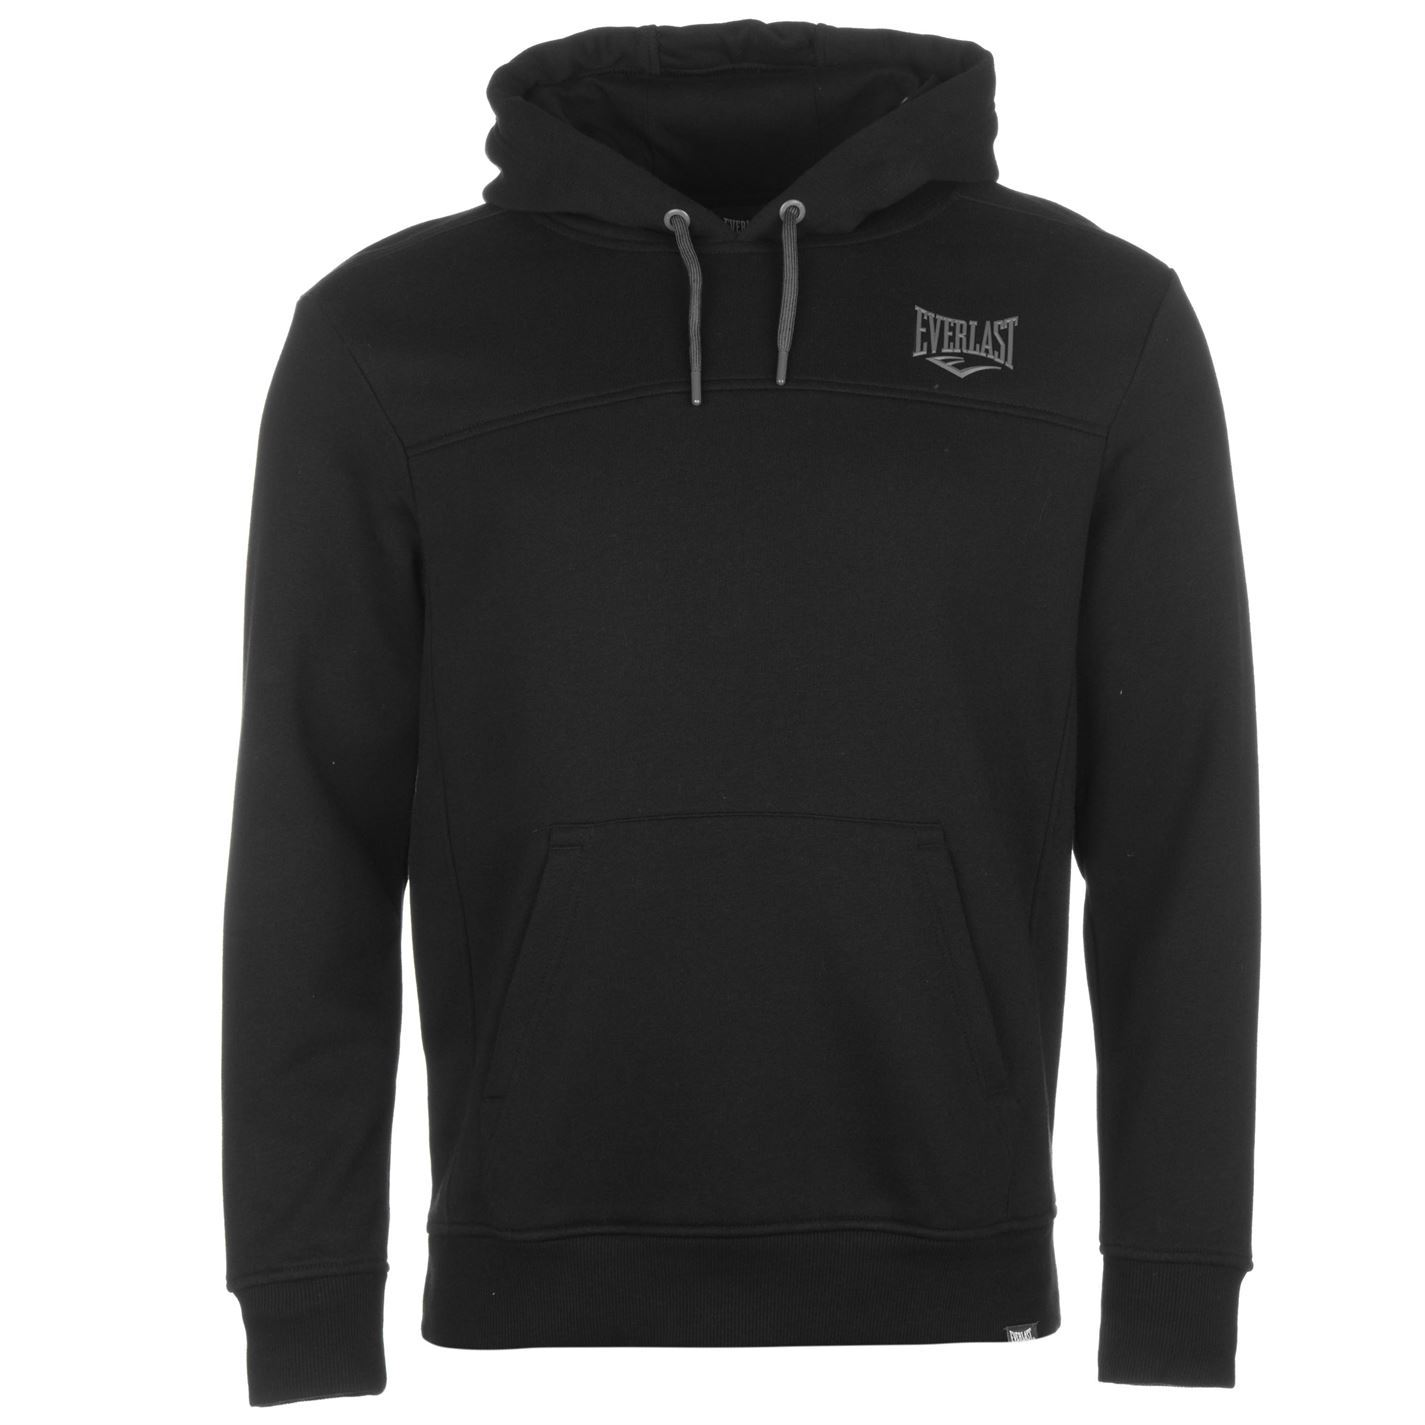 Everlast-Logo-Pullover-Hoody-Mens-OTH-Hoodie-Hooded-Top-Sweatshirt-Sweater thumbnail 6